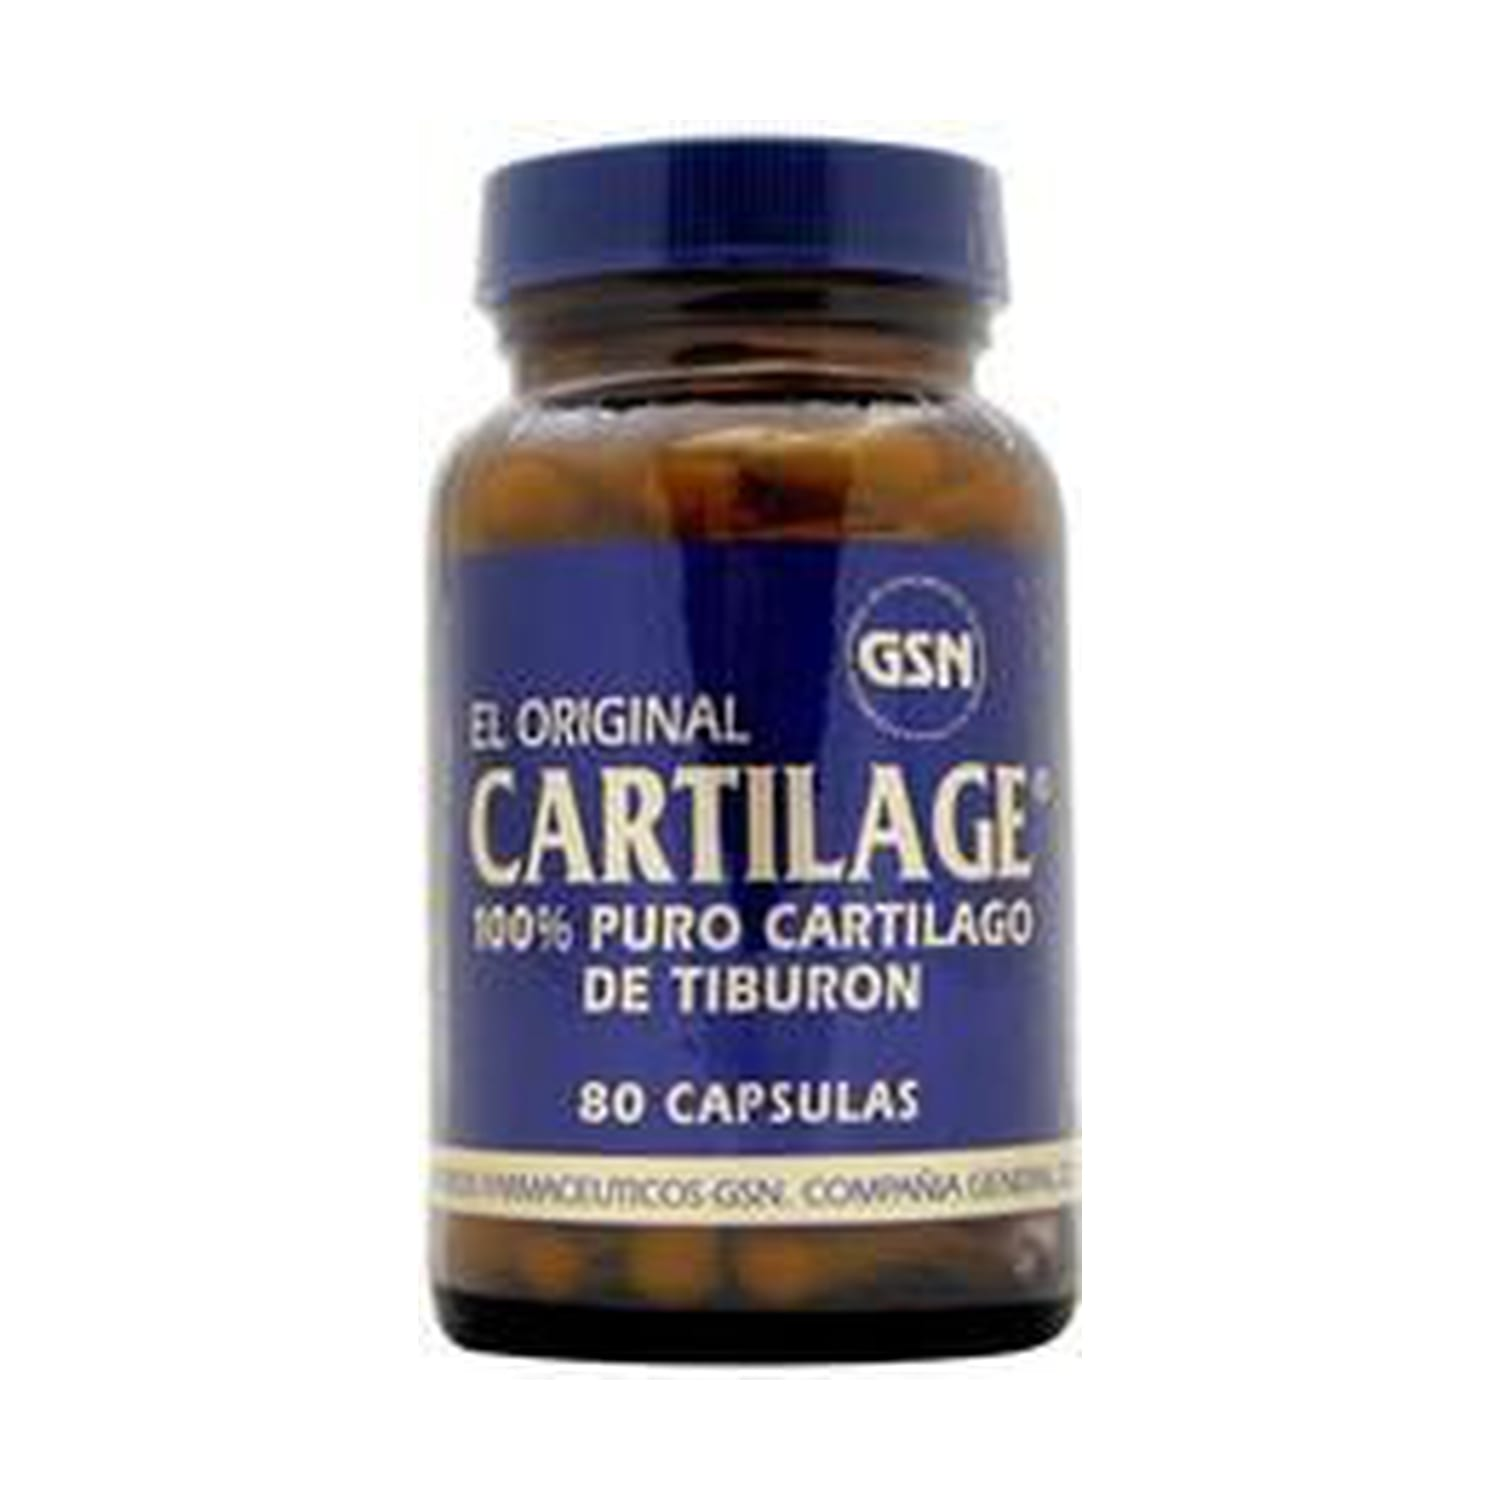 El Original Cartilage – GSN – 80 cápsulas